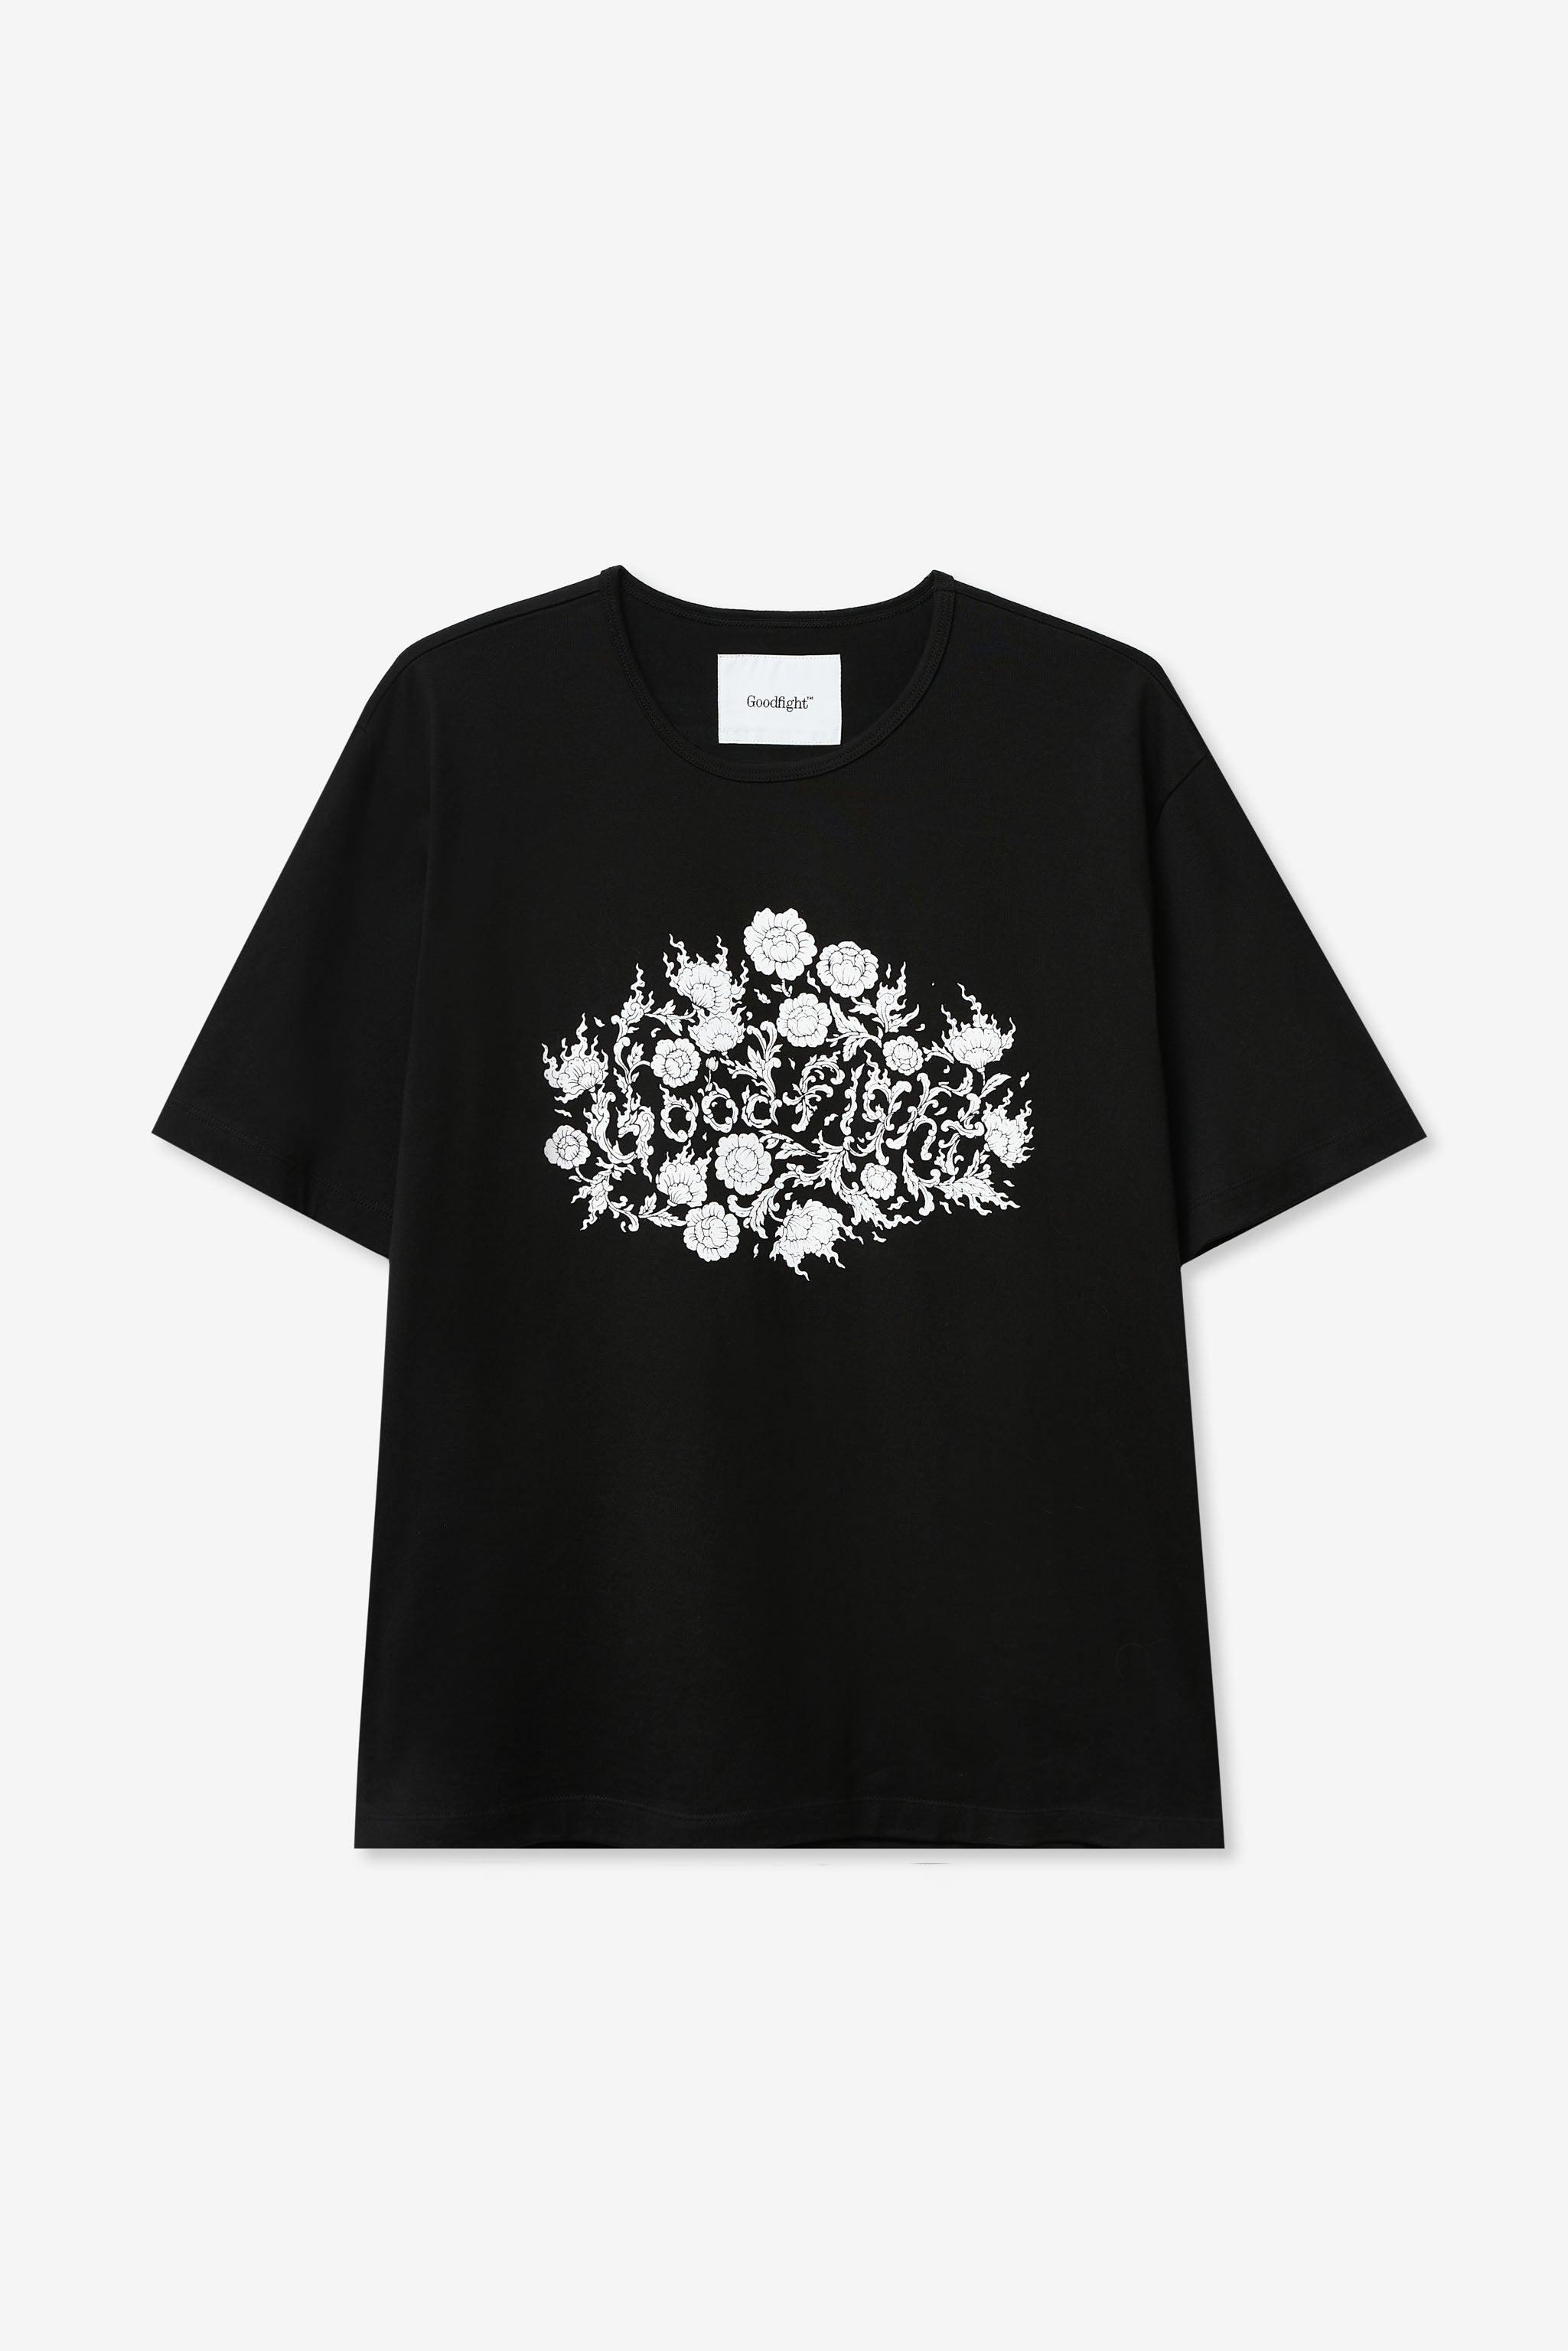 Goodfight North Am Tour Tee Black